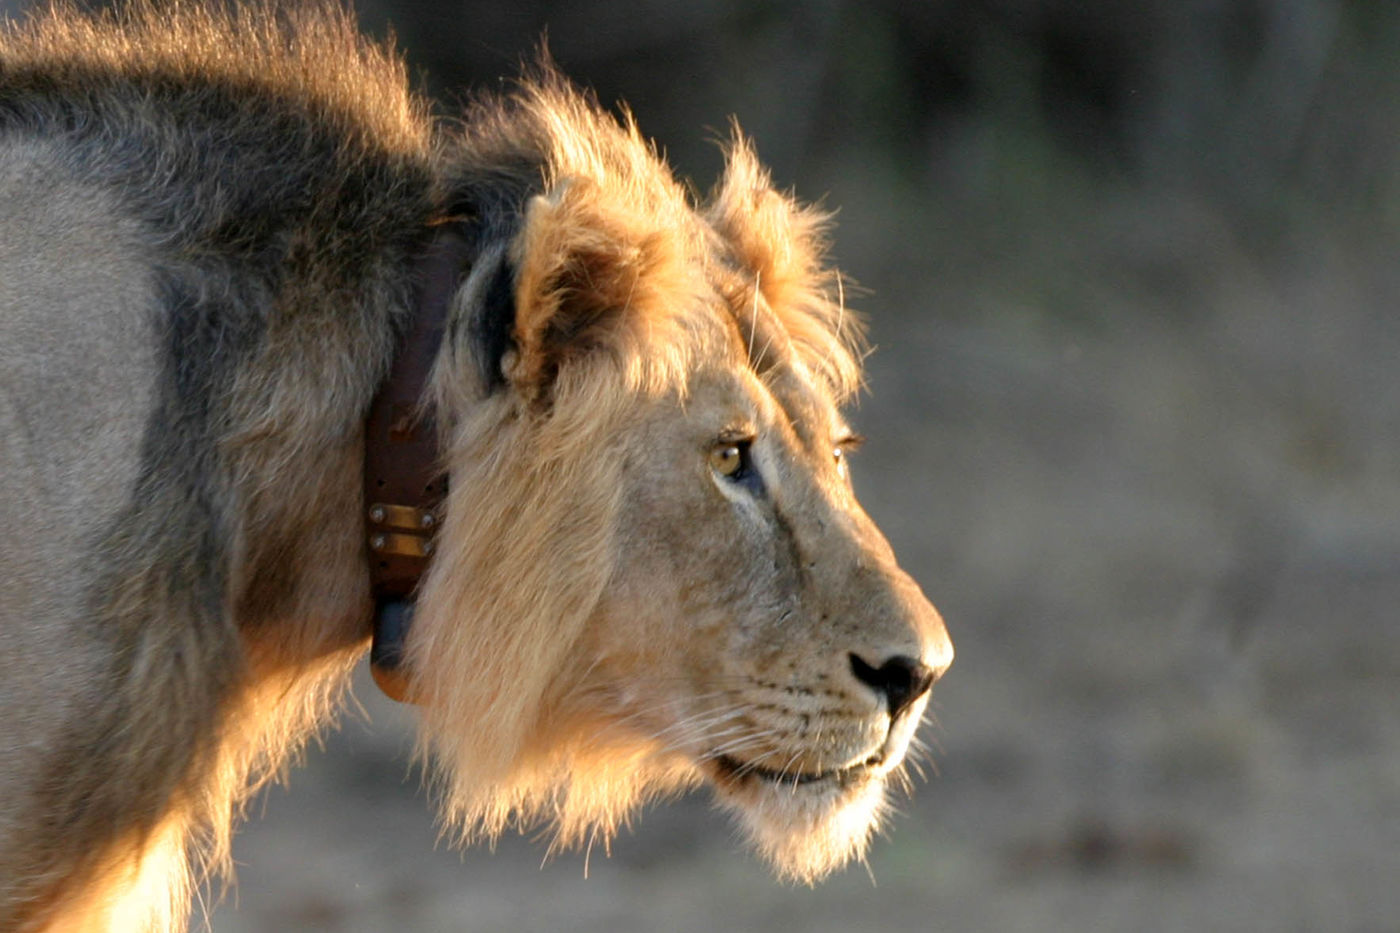 Close-up of a lion with a mane and a leather and metal collar around its neck